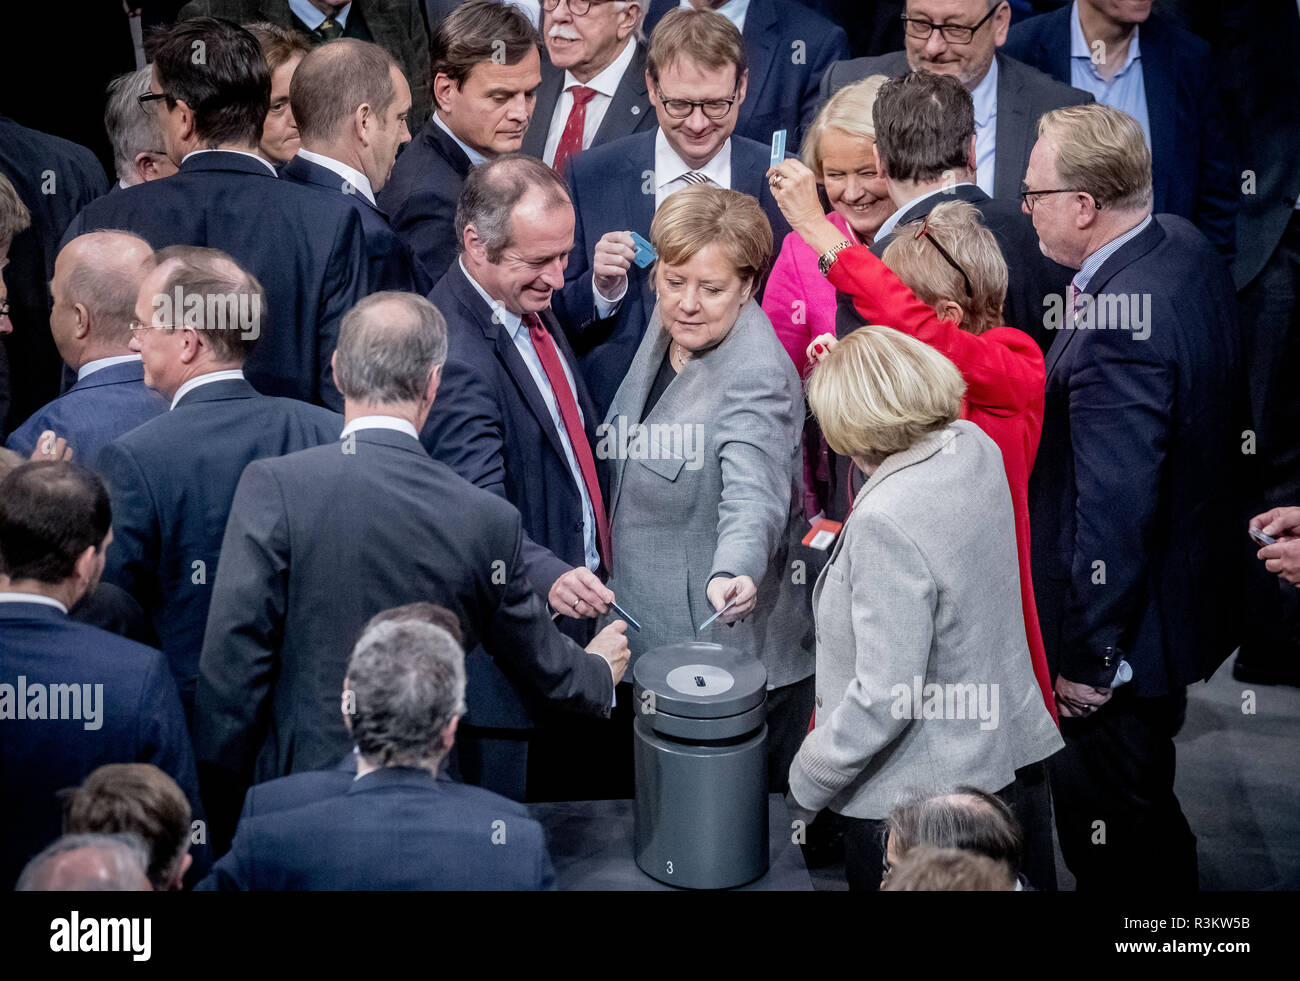 Berlin, Germany. 23rd Nov, 2018. After the 3rd reading, Chancellor Angela Merkel (CDU) interjects her voting card in the Bundestag for the adoption of the federal government's draft budget law for 2019. Credit: Michael Kappeler/dpa/Alamy Live News - Stock Image